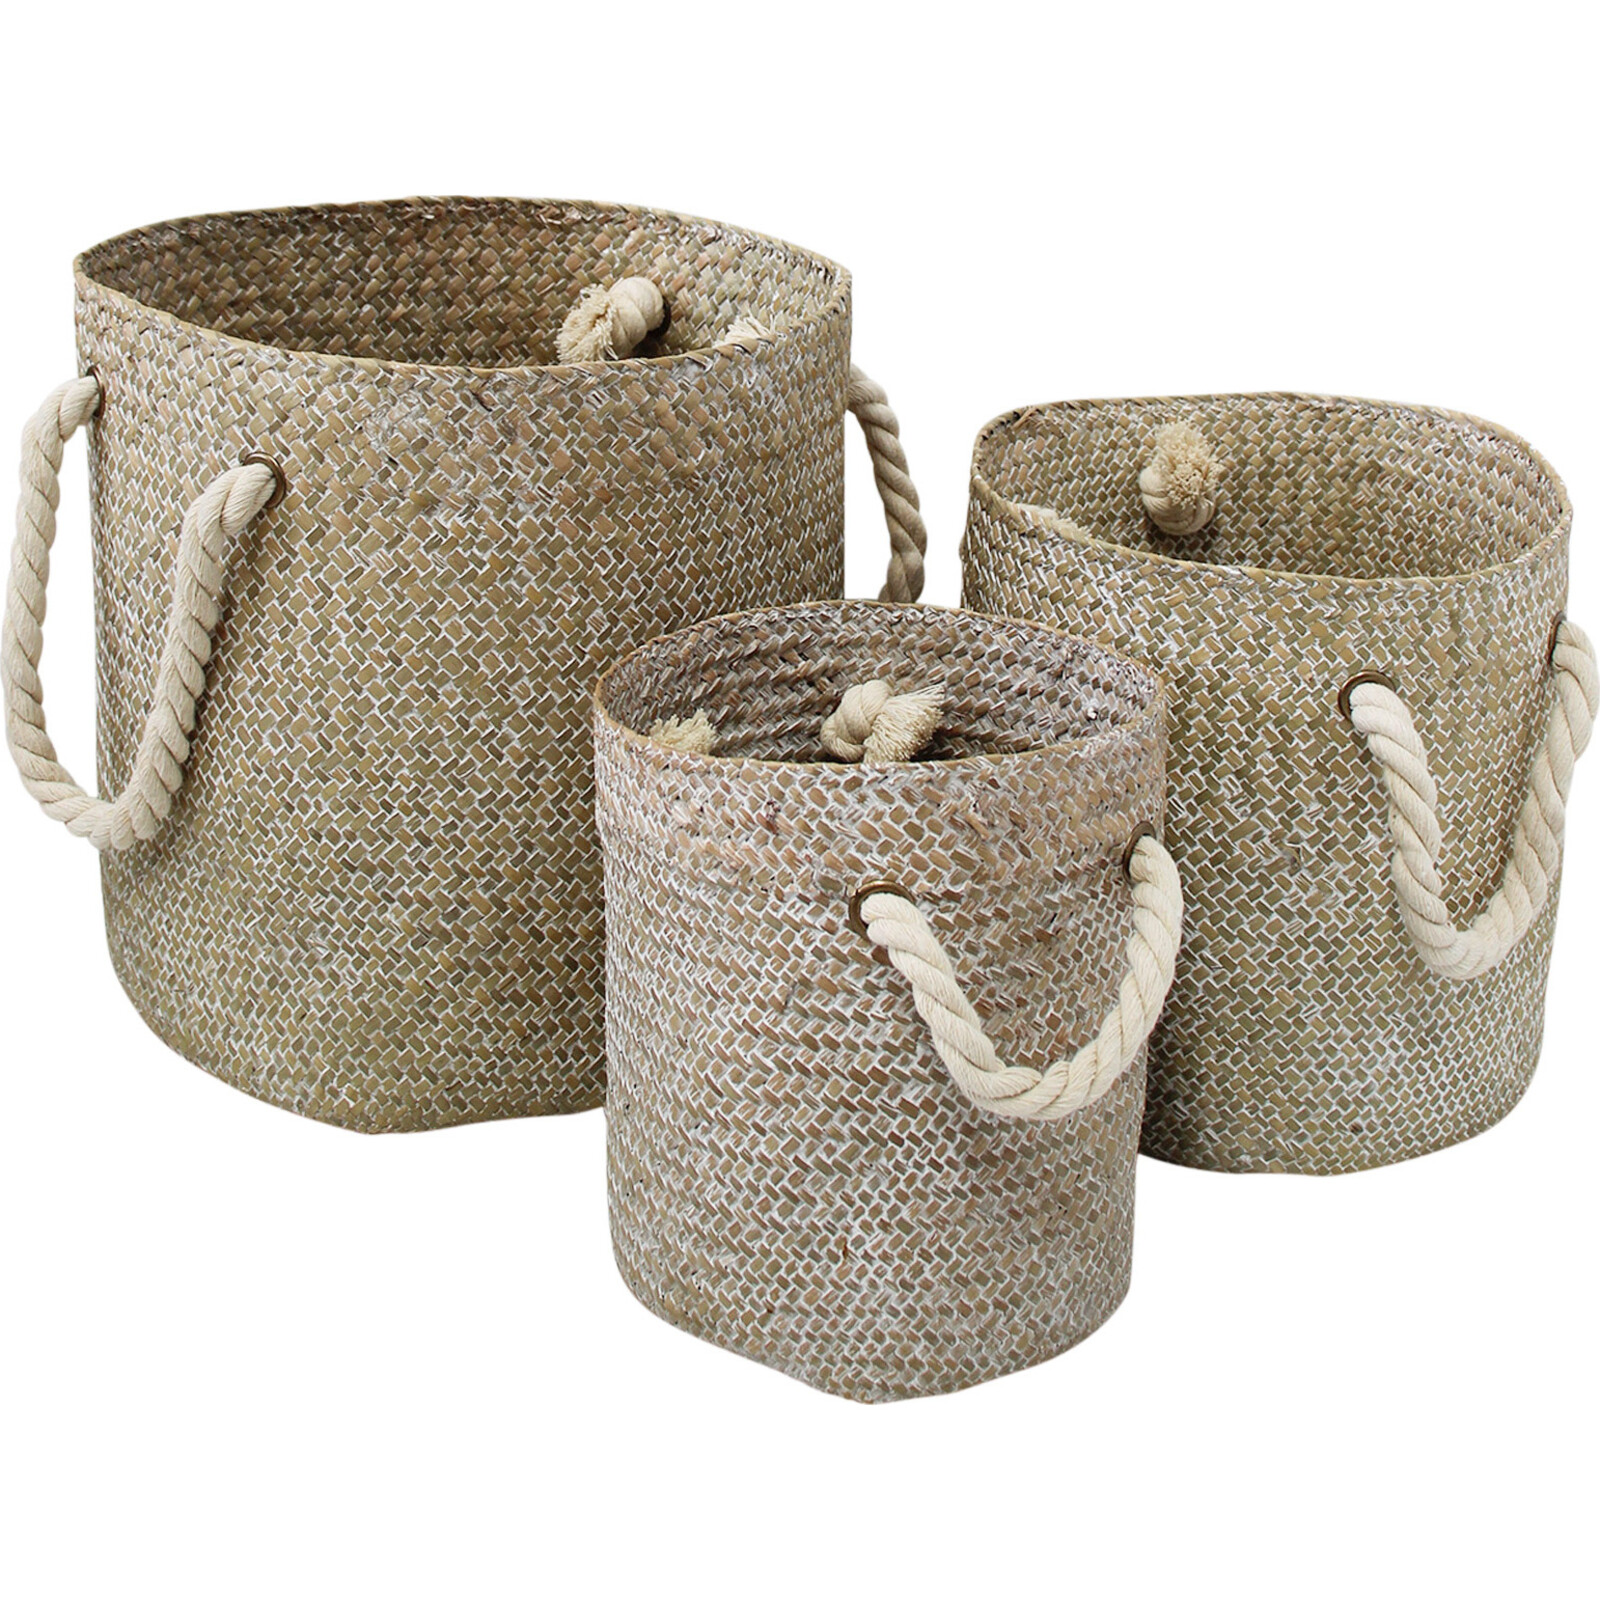 Woven Tubs S/3 Rope Handle Washed